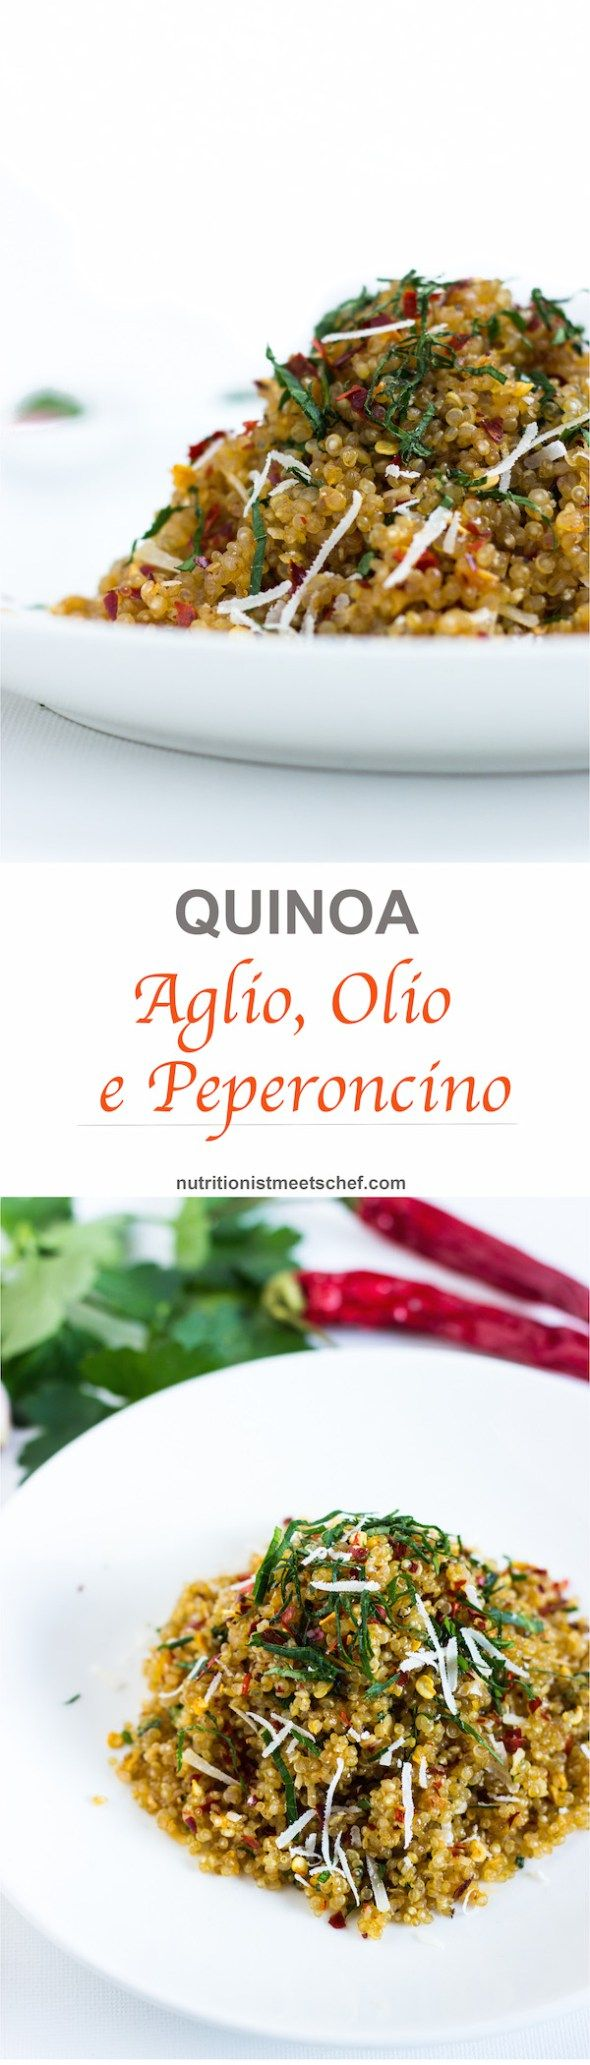 Quinoa Aglio, Olio e Peperoncino. A spin of the classic italian dish. The perfect comfort food as it is quick, easy and healthy!